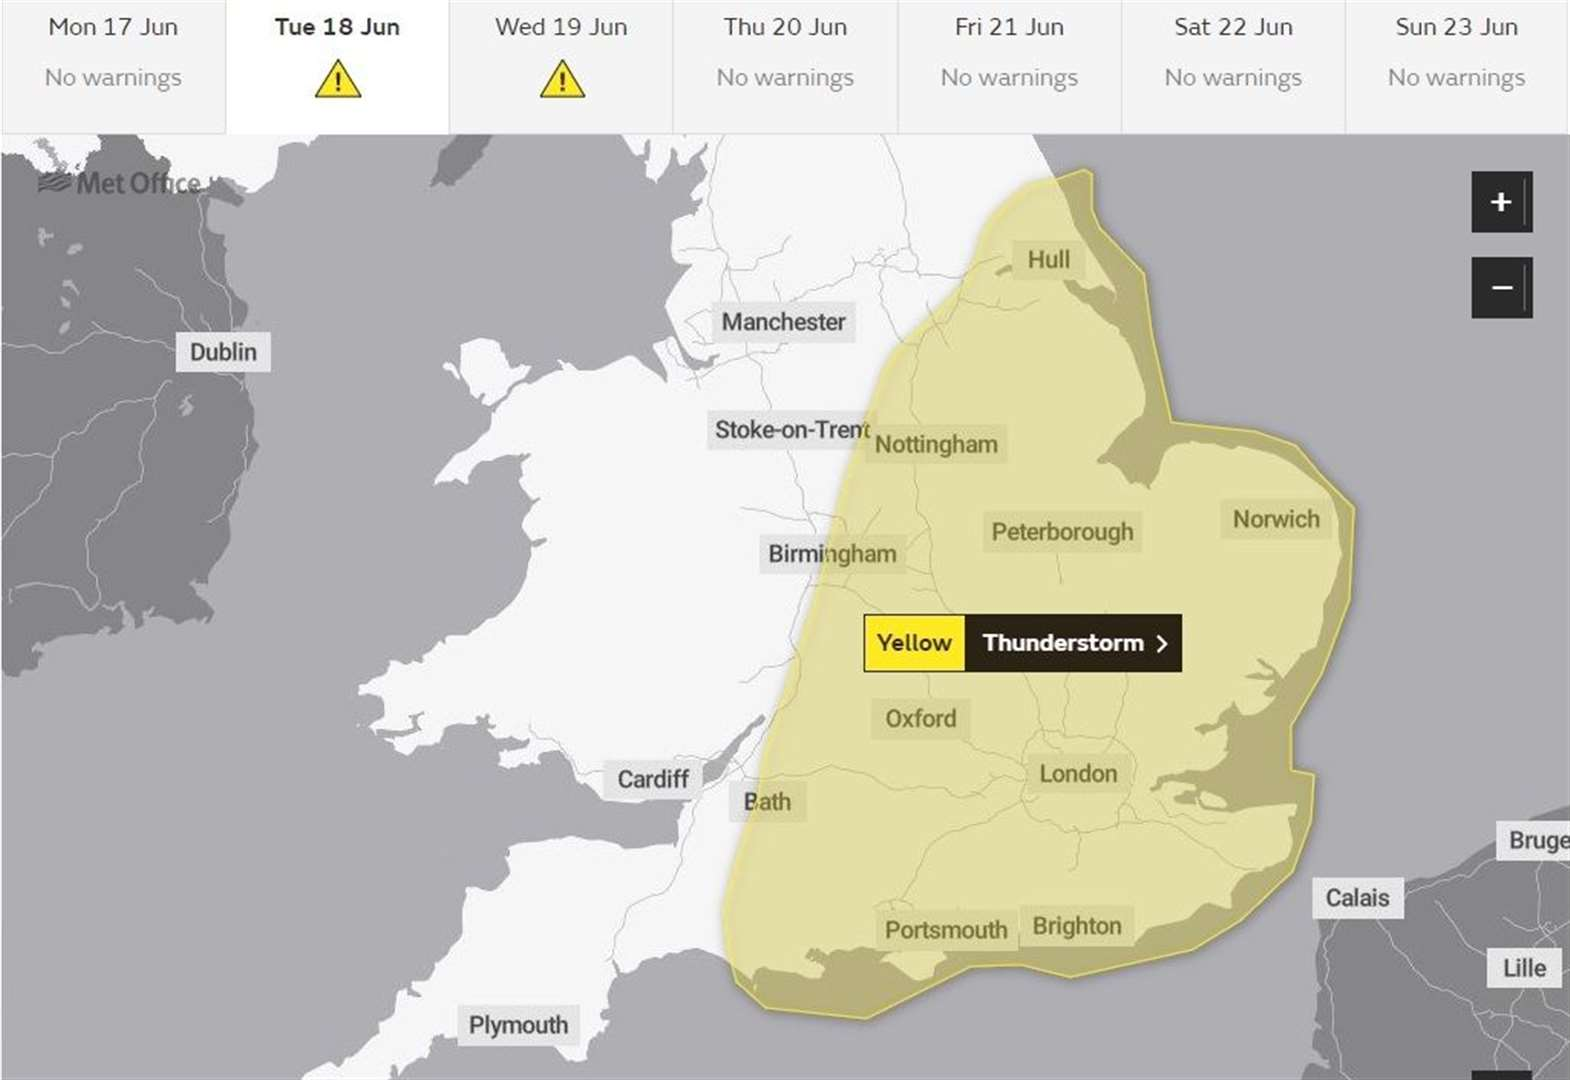 Met Office issues yellow weather warning for torrential rain and thunderstorms